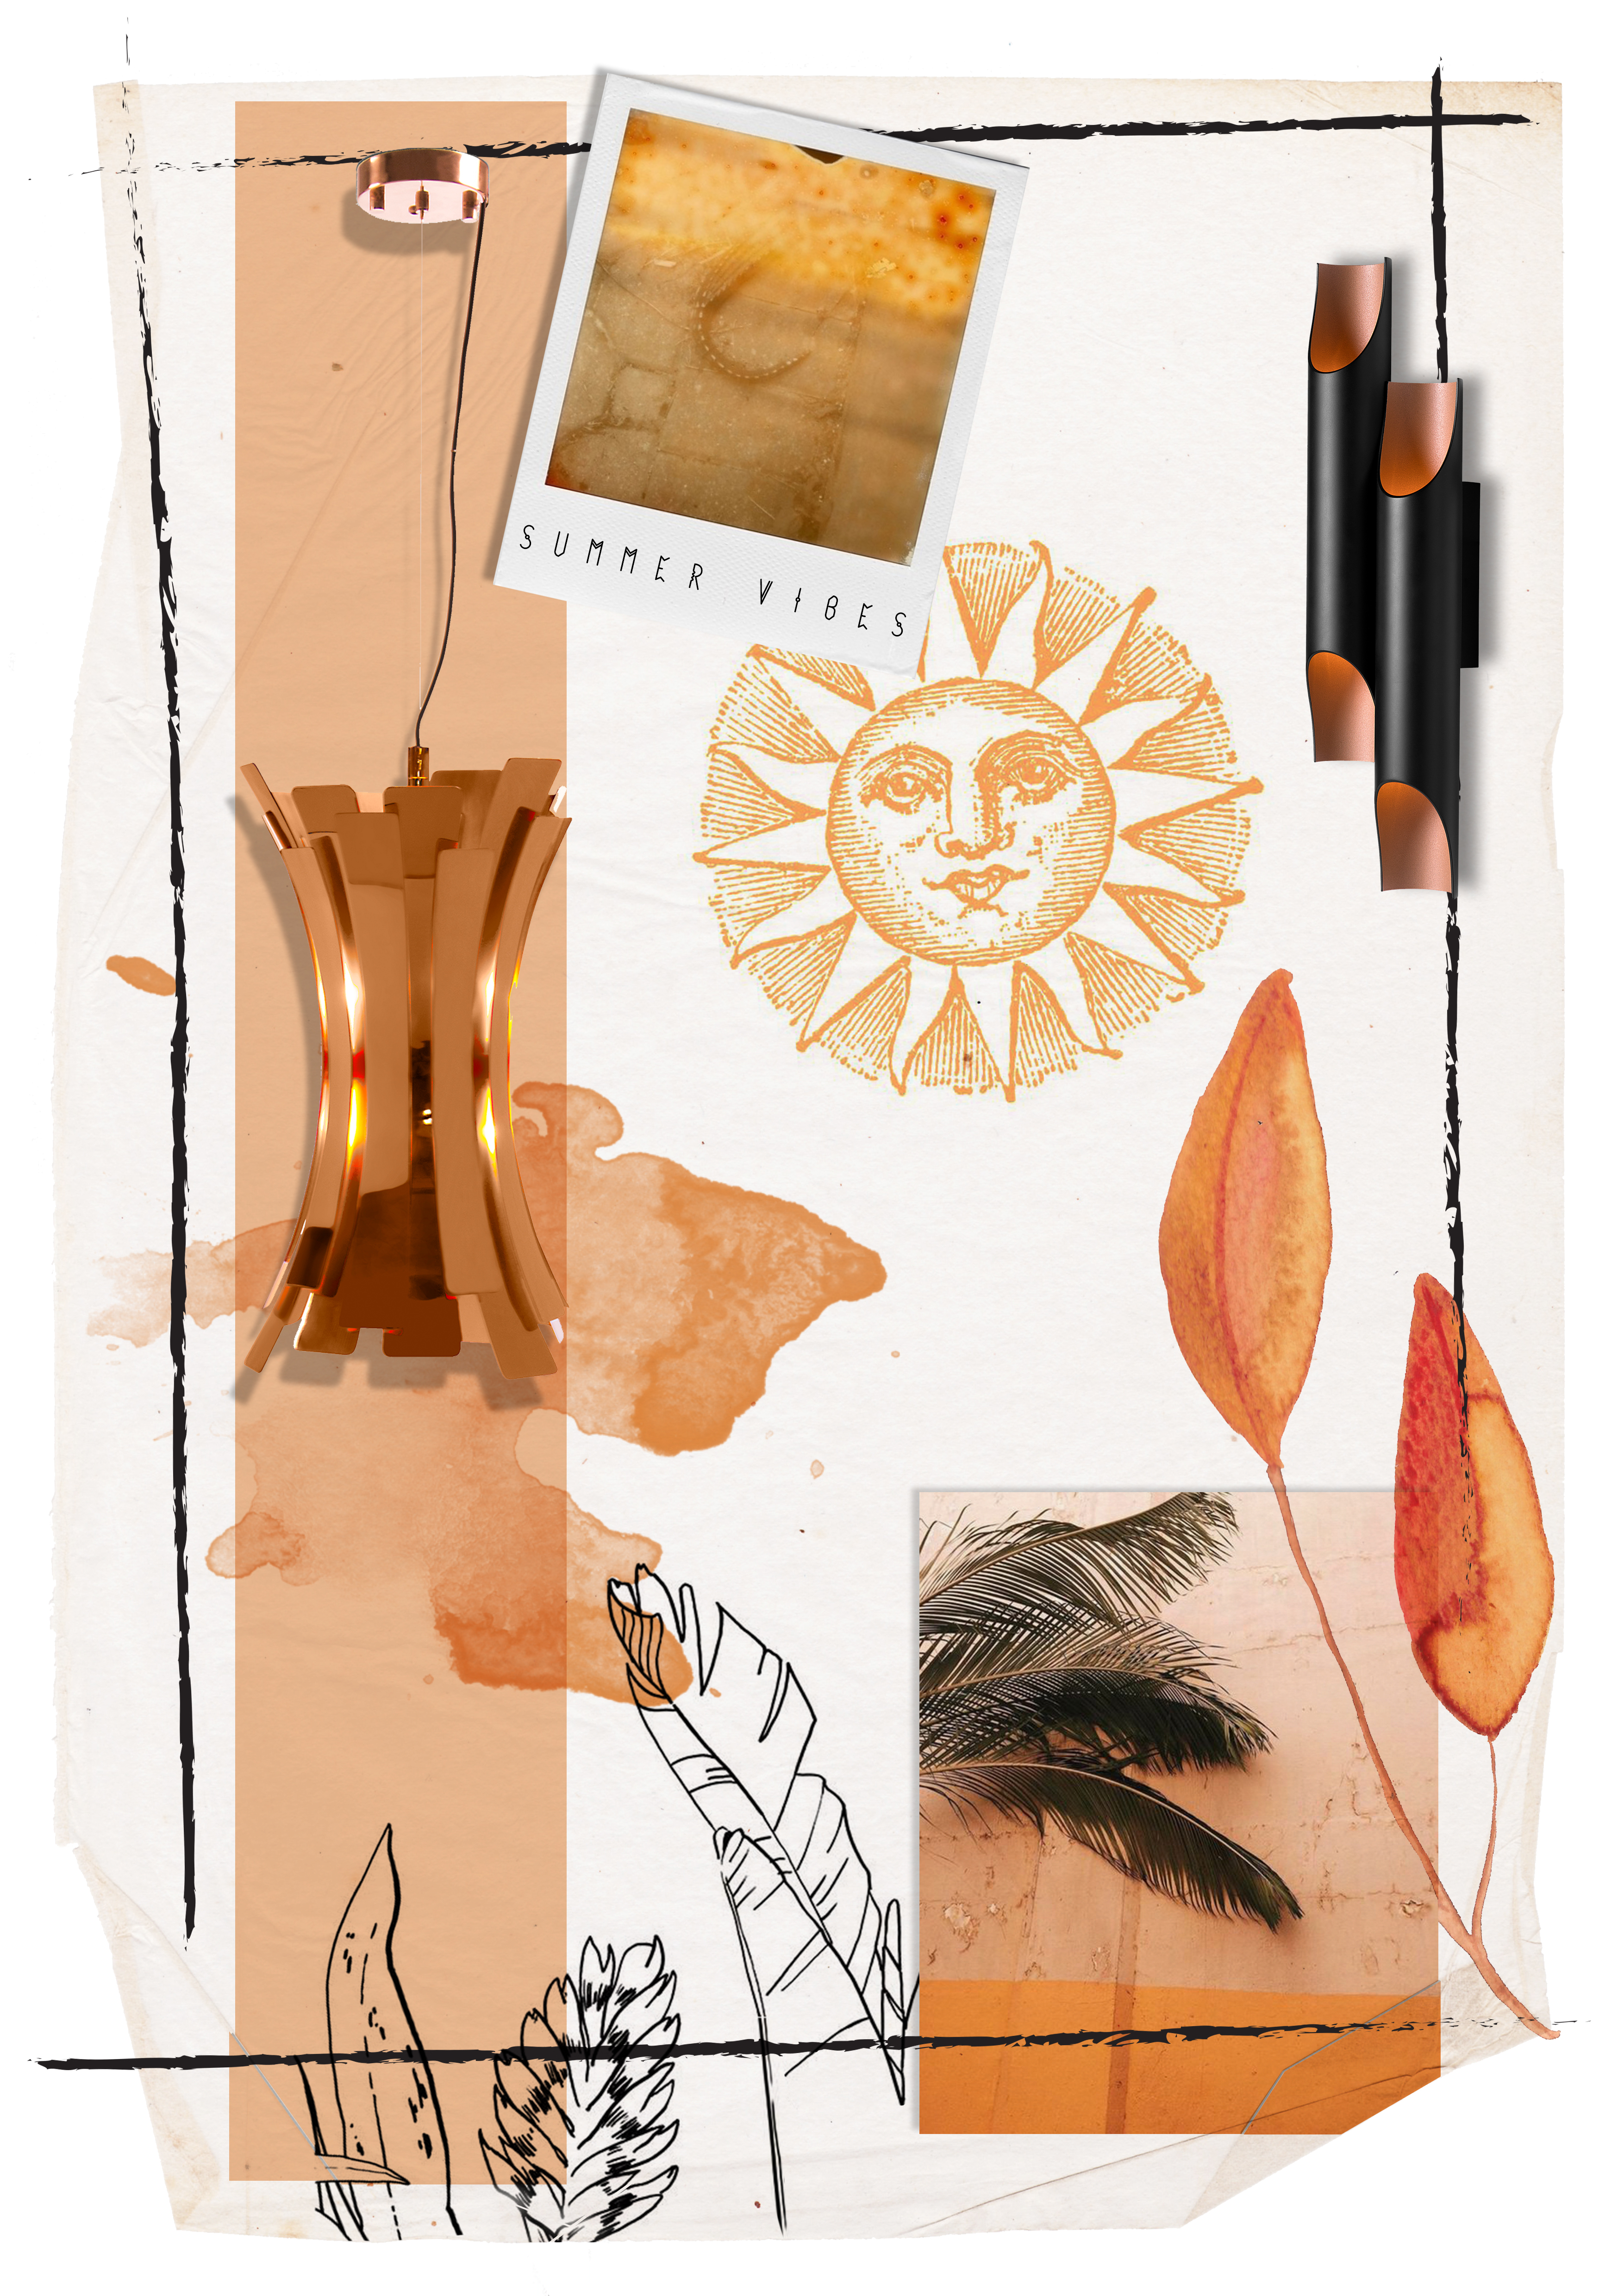 DelightFULL Went All-In With The Summer Moodboards This Year 7 summer moodboards DelightFULL Went All-In With The Summer Moodboards This Year! DelightFULL Went All In With The Summer Moodboards This Year 7